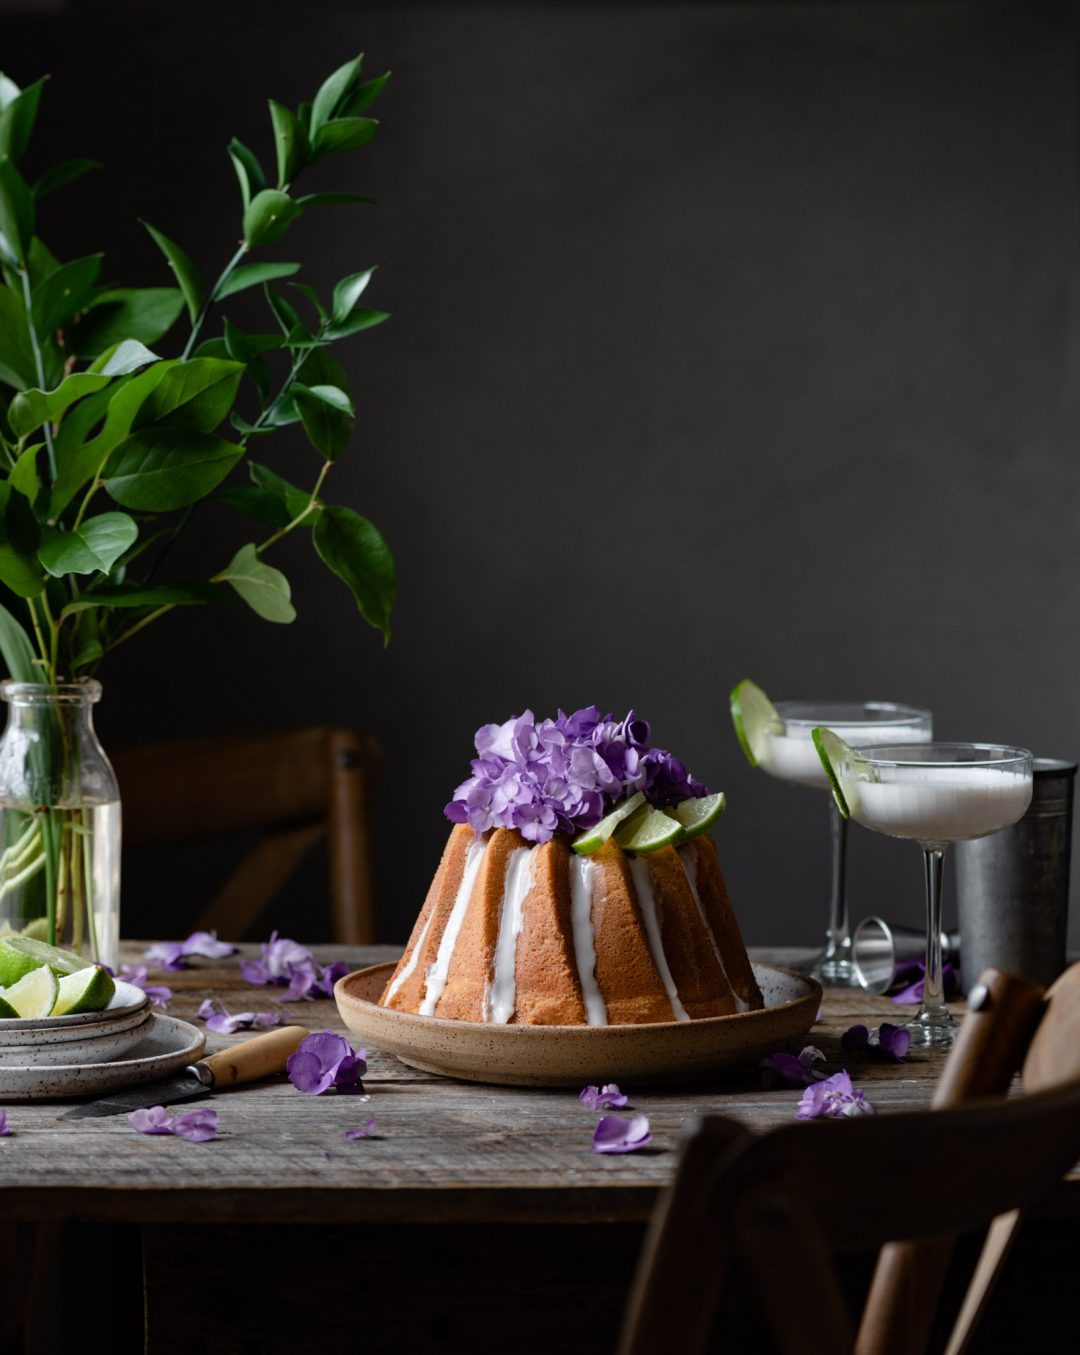 Key Lime Cake on table with flowers and cocktails.